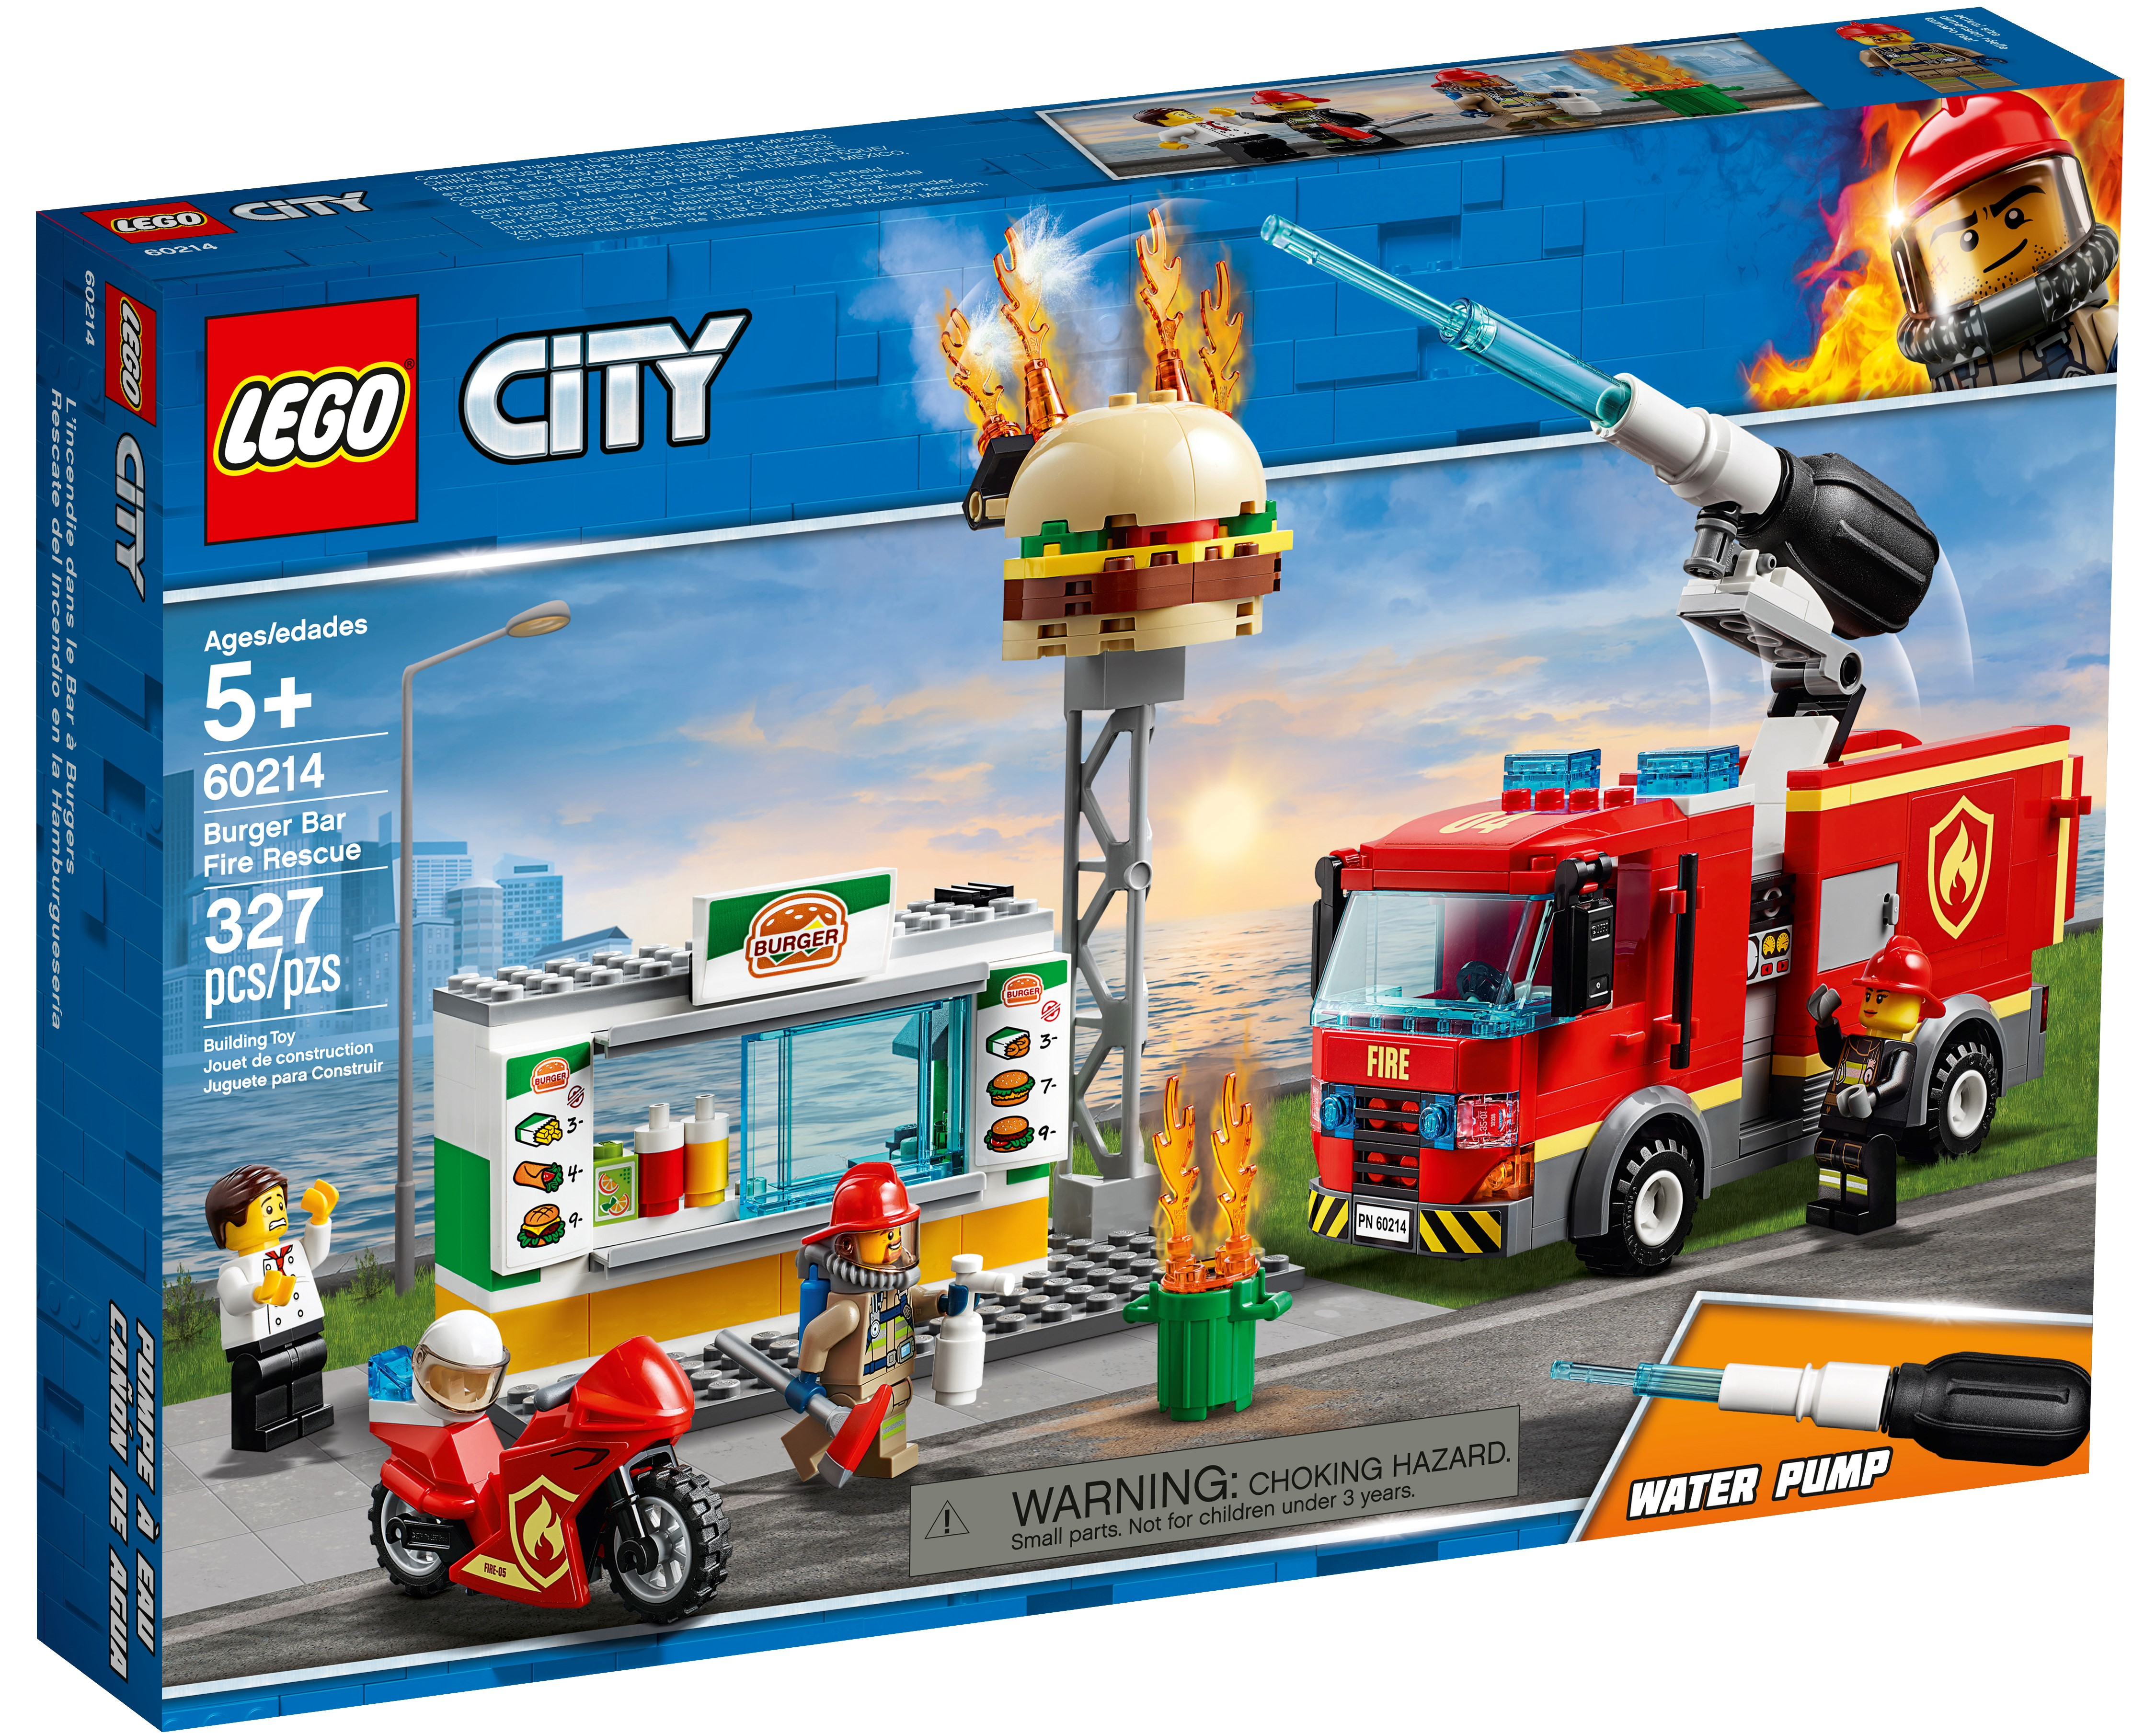 Burger Bar Fire Rescue 60214 City Buy Online At The Official Lego Shop Us